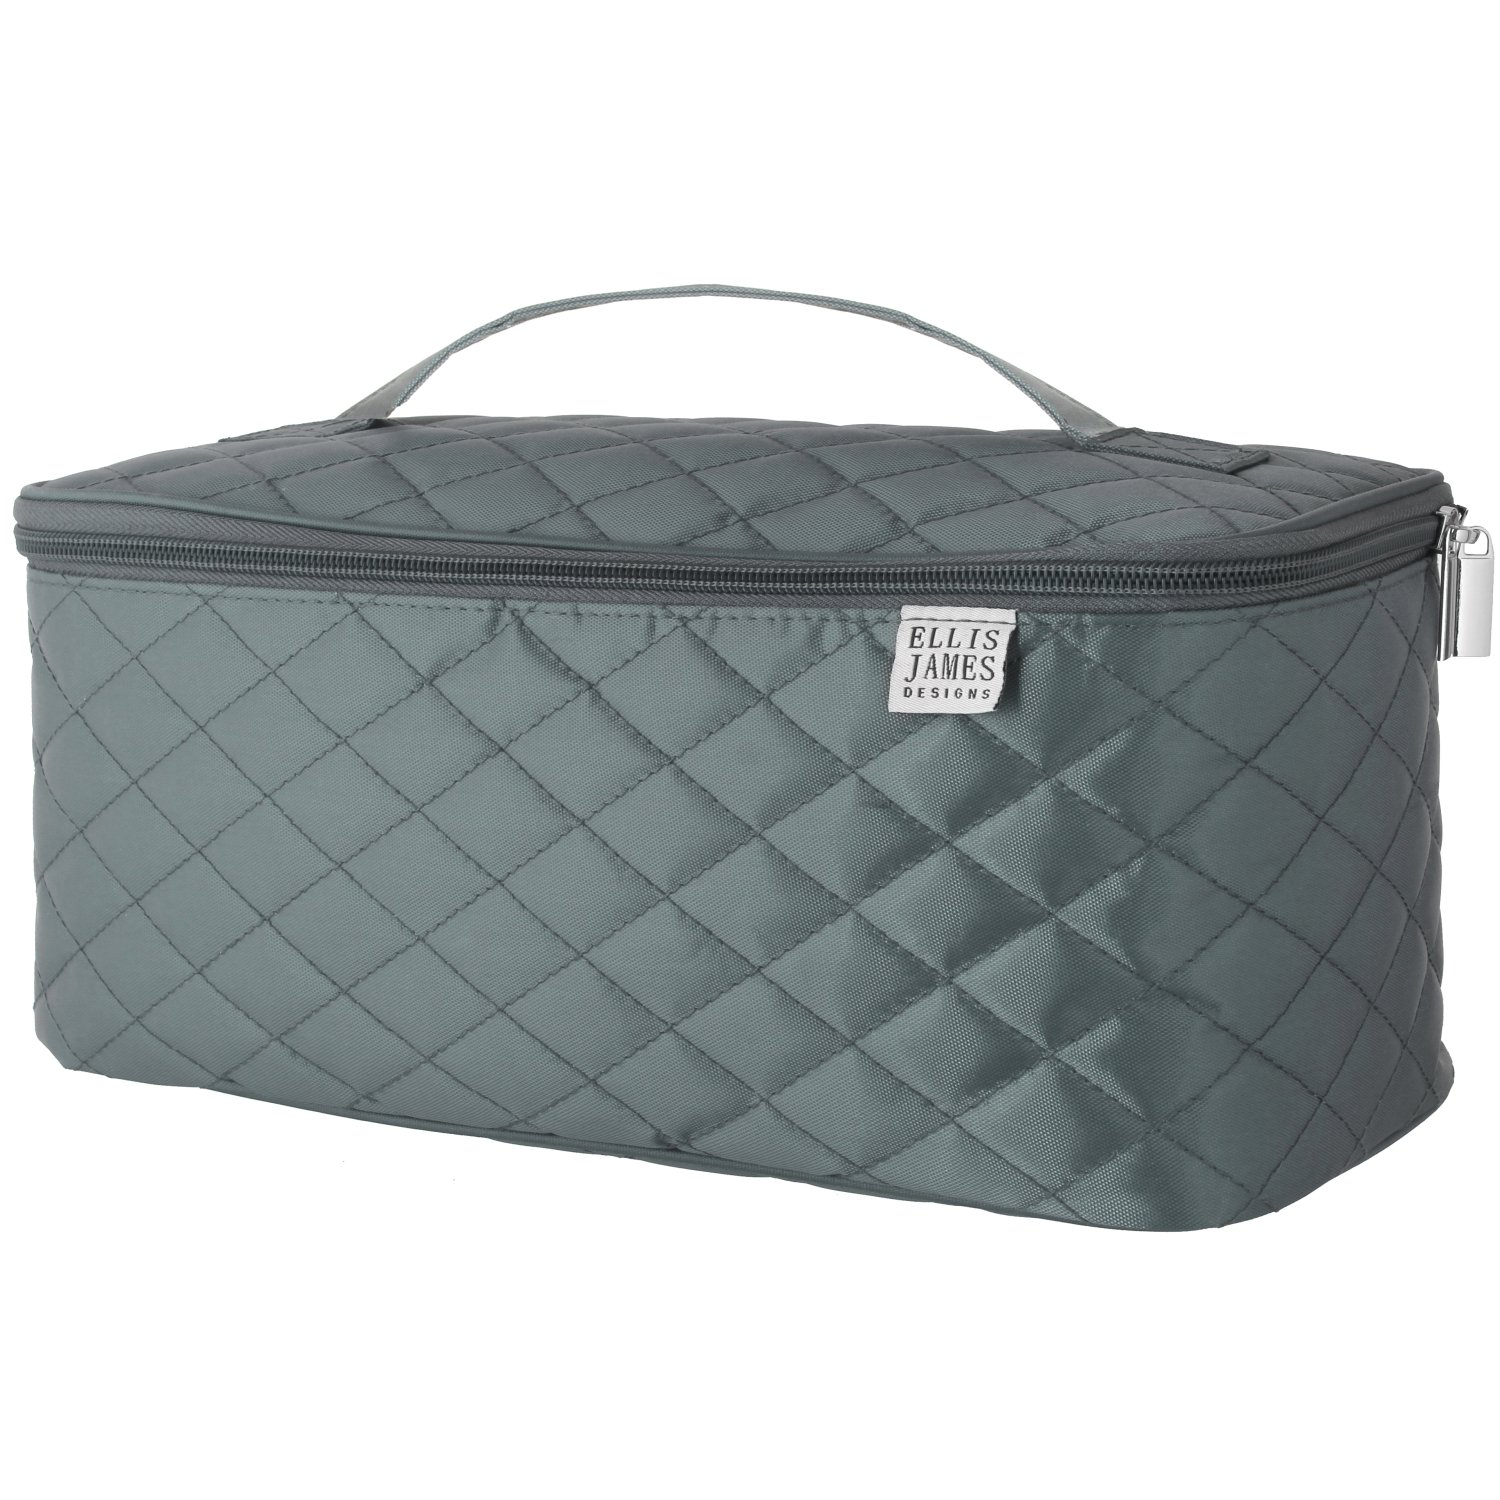 7f3f02b5a5a25 Amazon.com   Ellis James Designs Large Travel Makeup Bag Organizer - Cosmetic  Train Case Toiletry Bags for Women - Grey - With Handle and Make Up Brush  ...